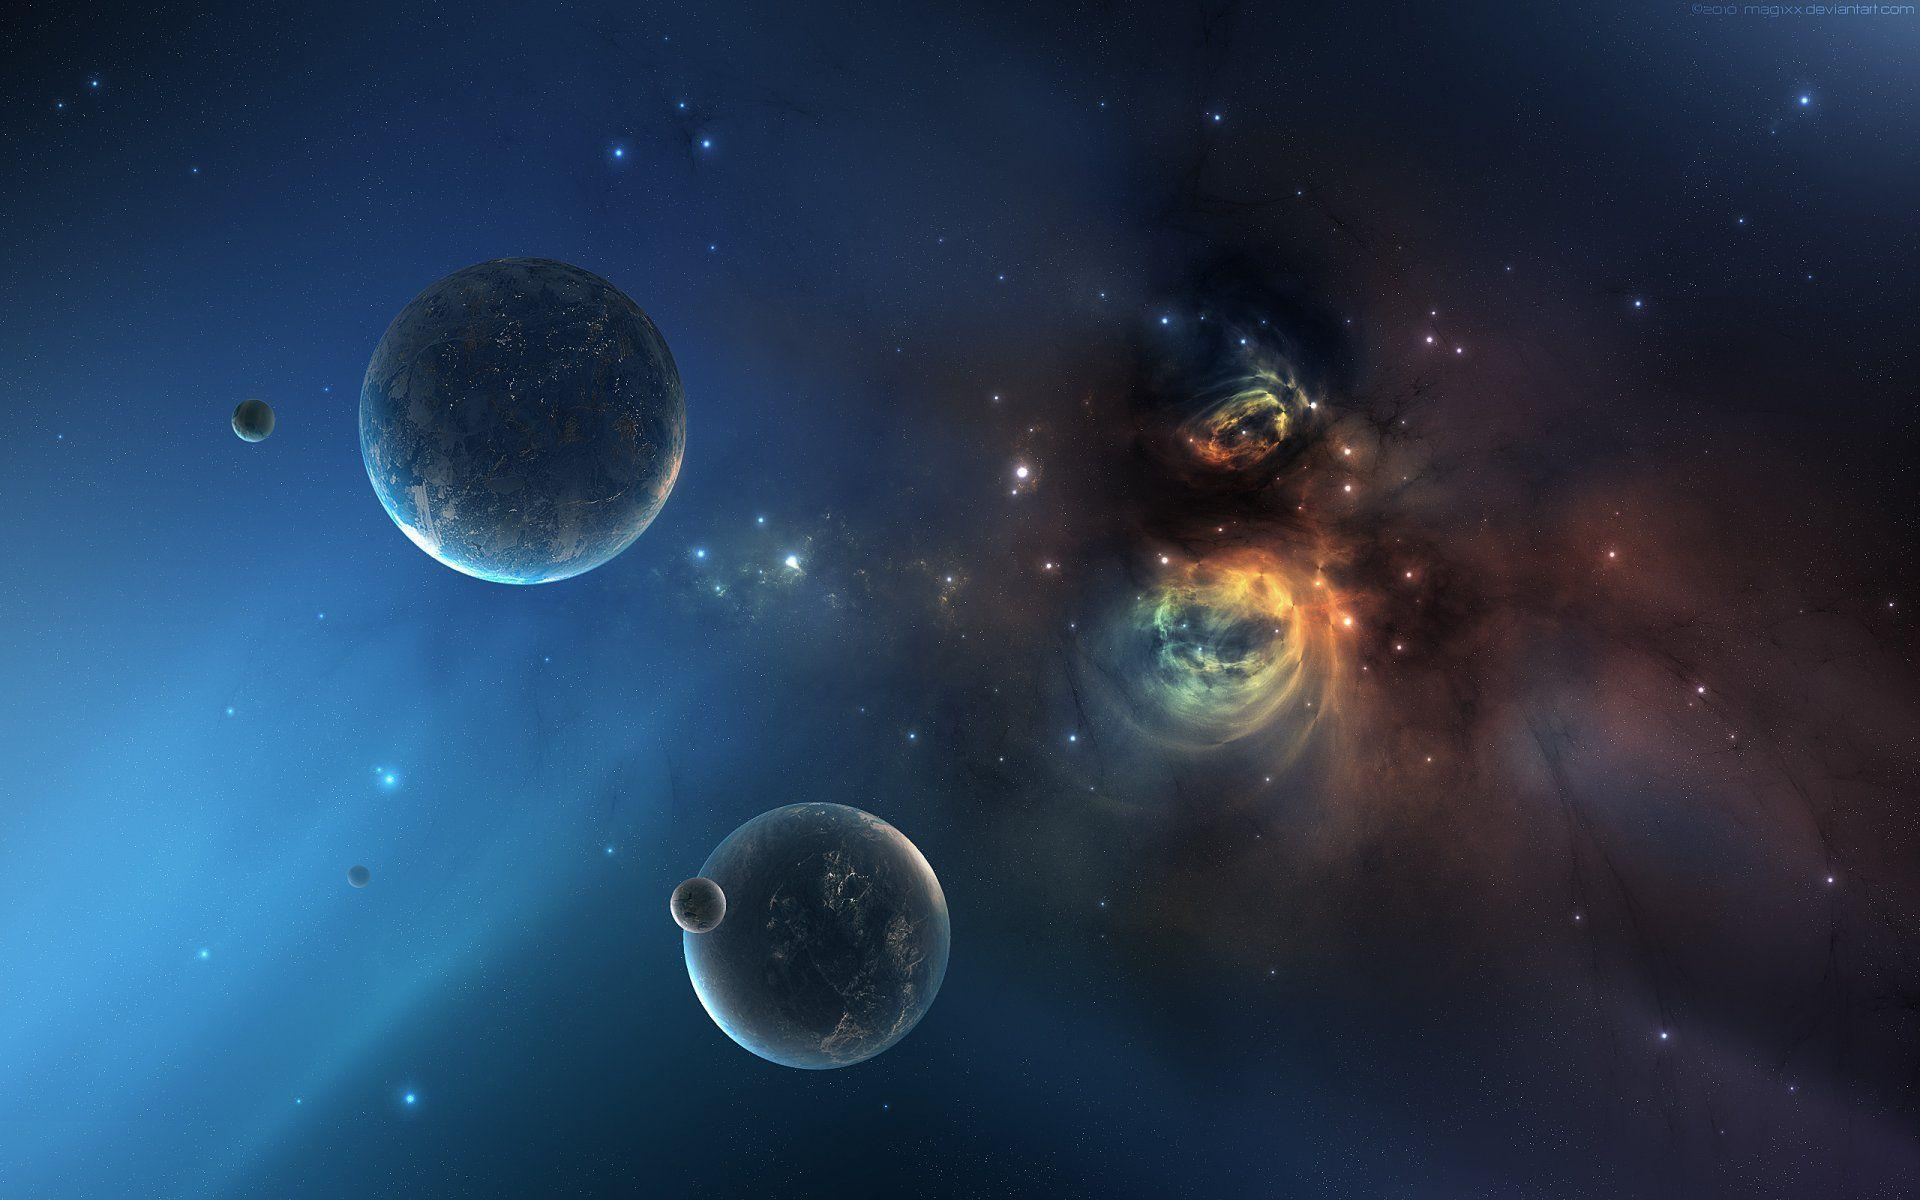 Space And Planets wallpaper - 635479